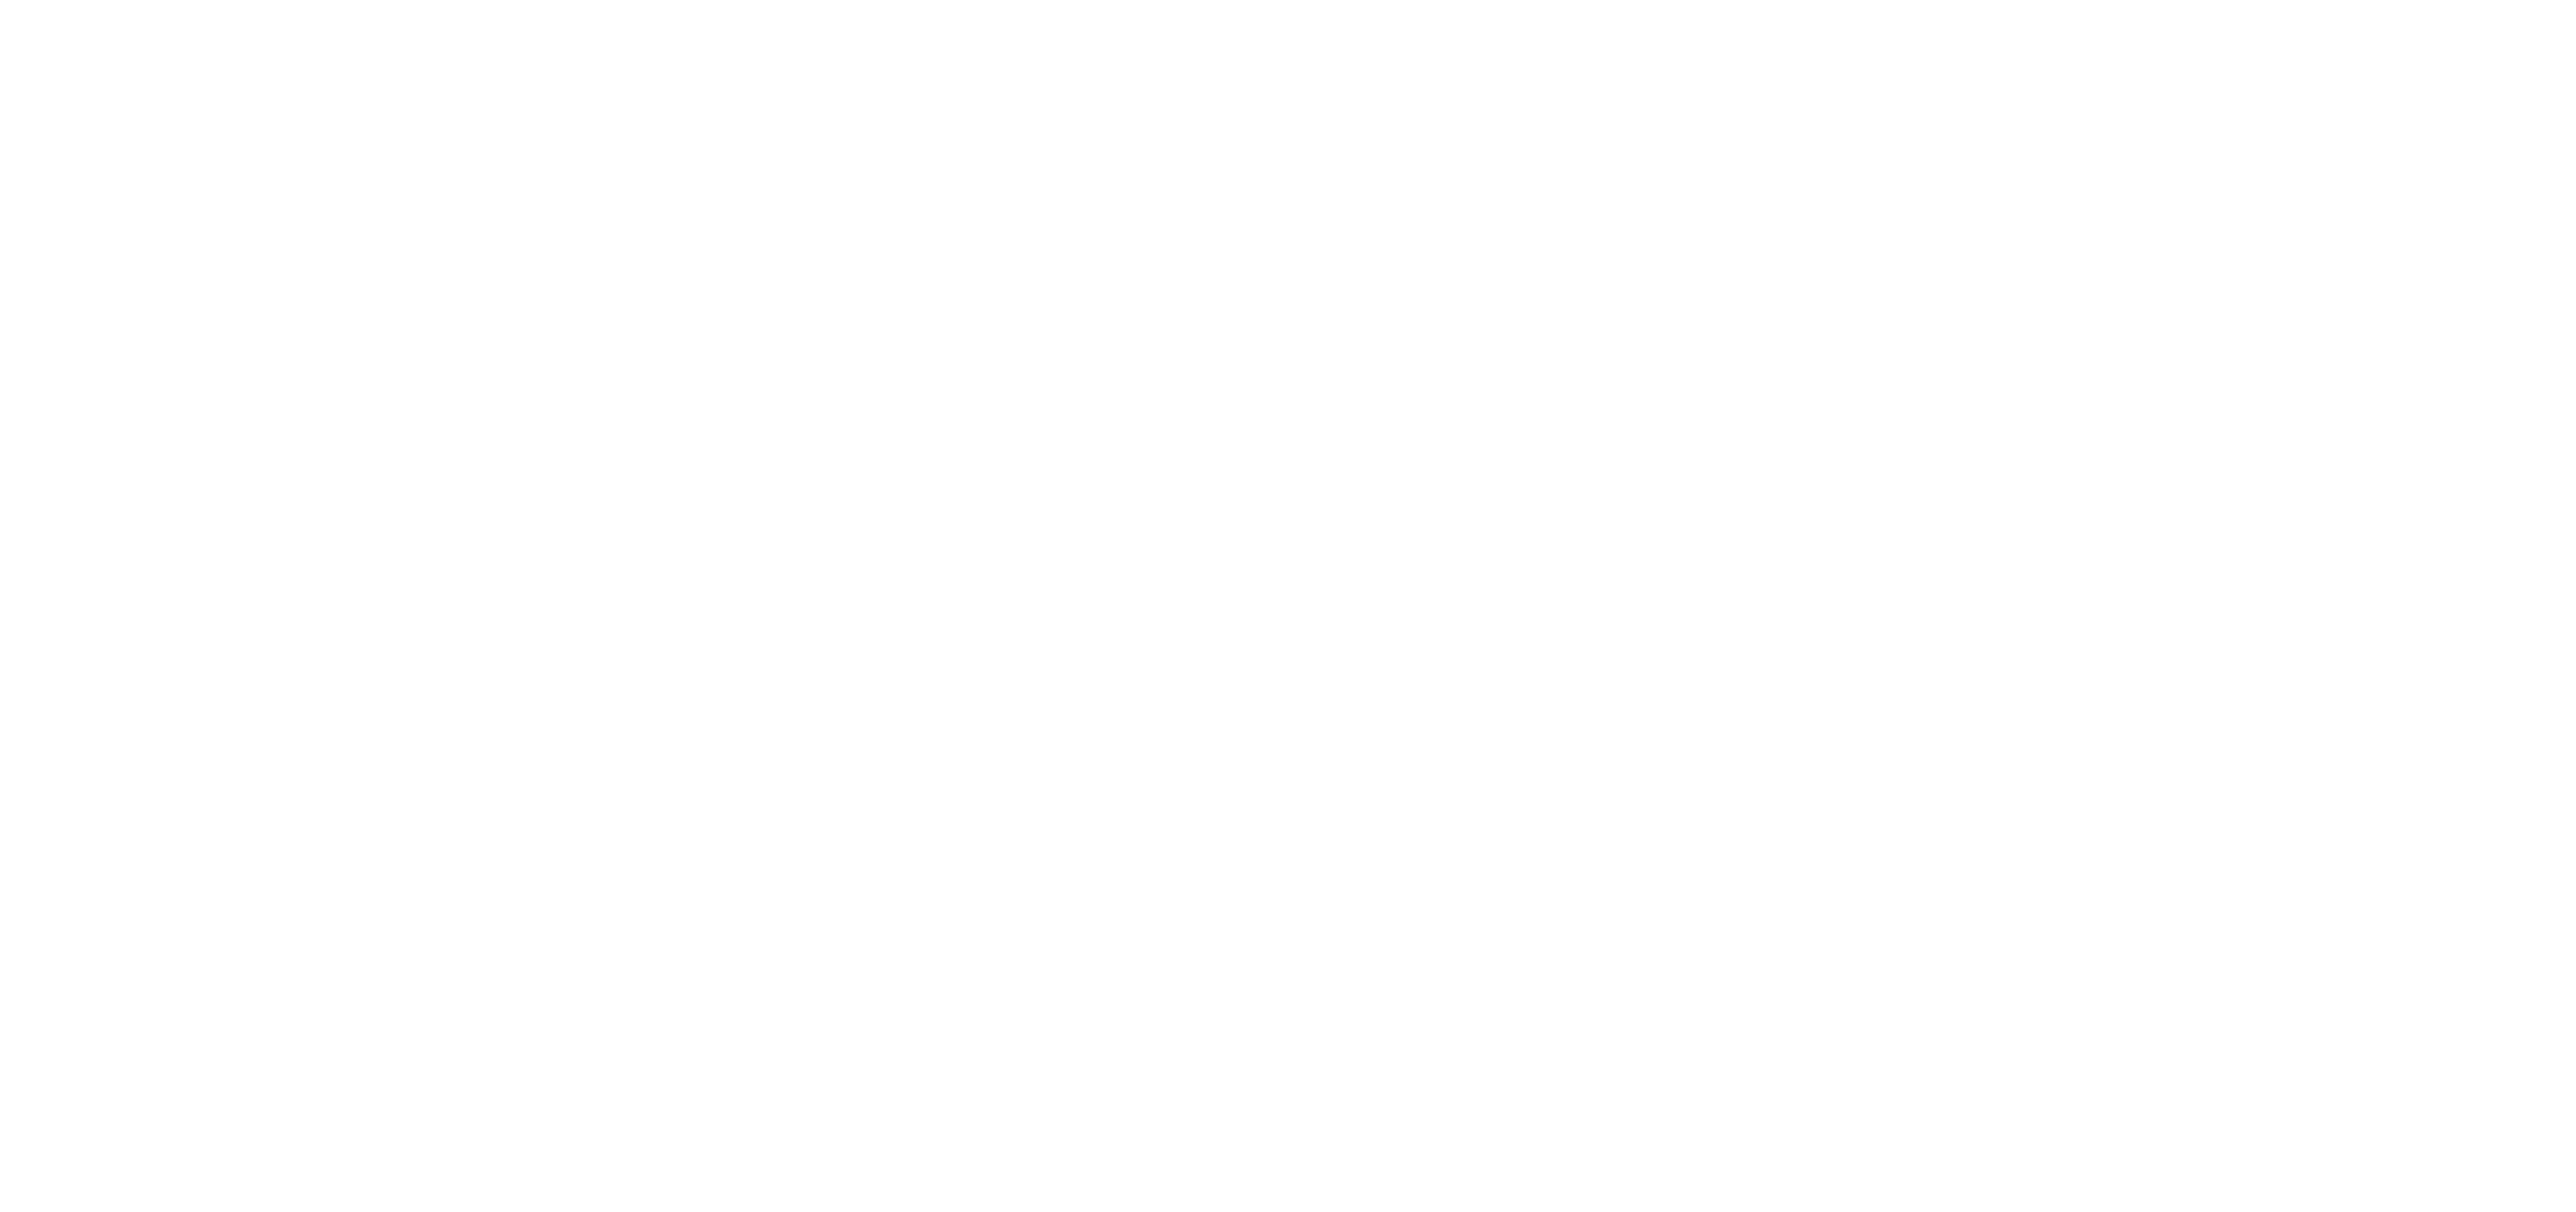 Bureau of Cultural Affairs Kaohsiung City Government